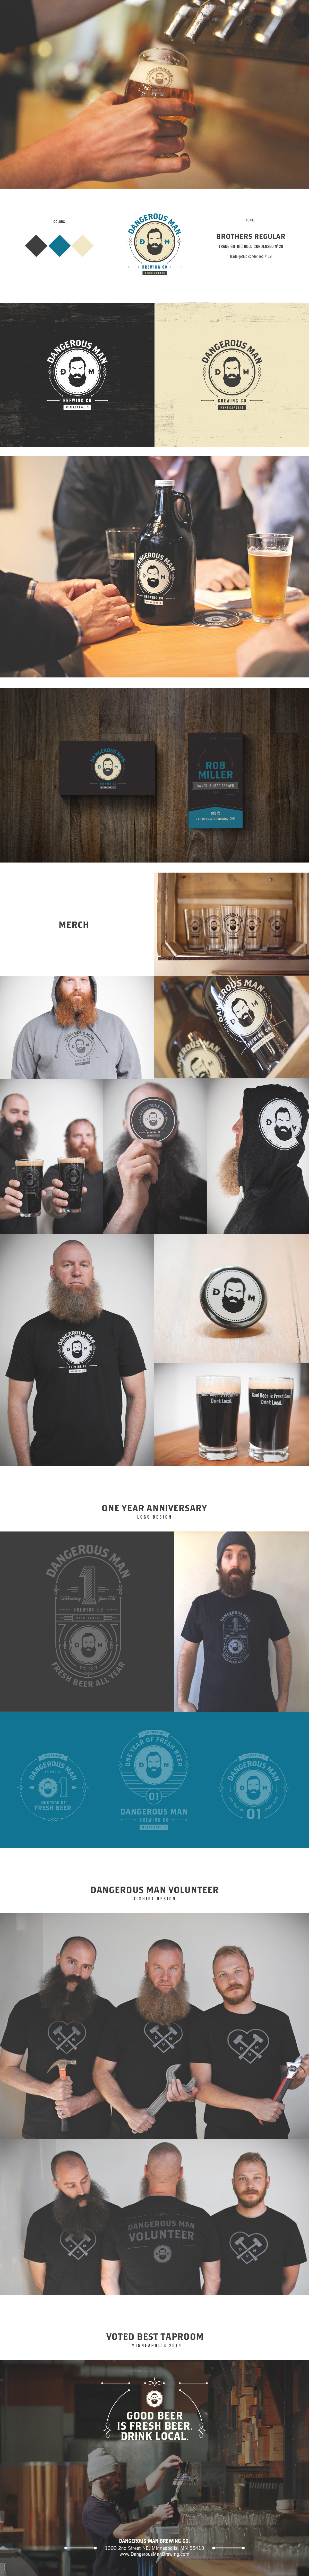 Dangerous Man Brewing Identity by keithevans.com